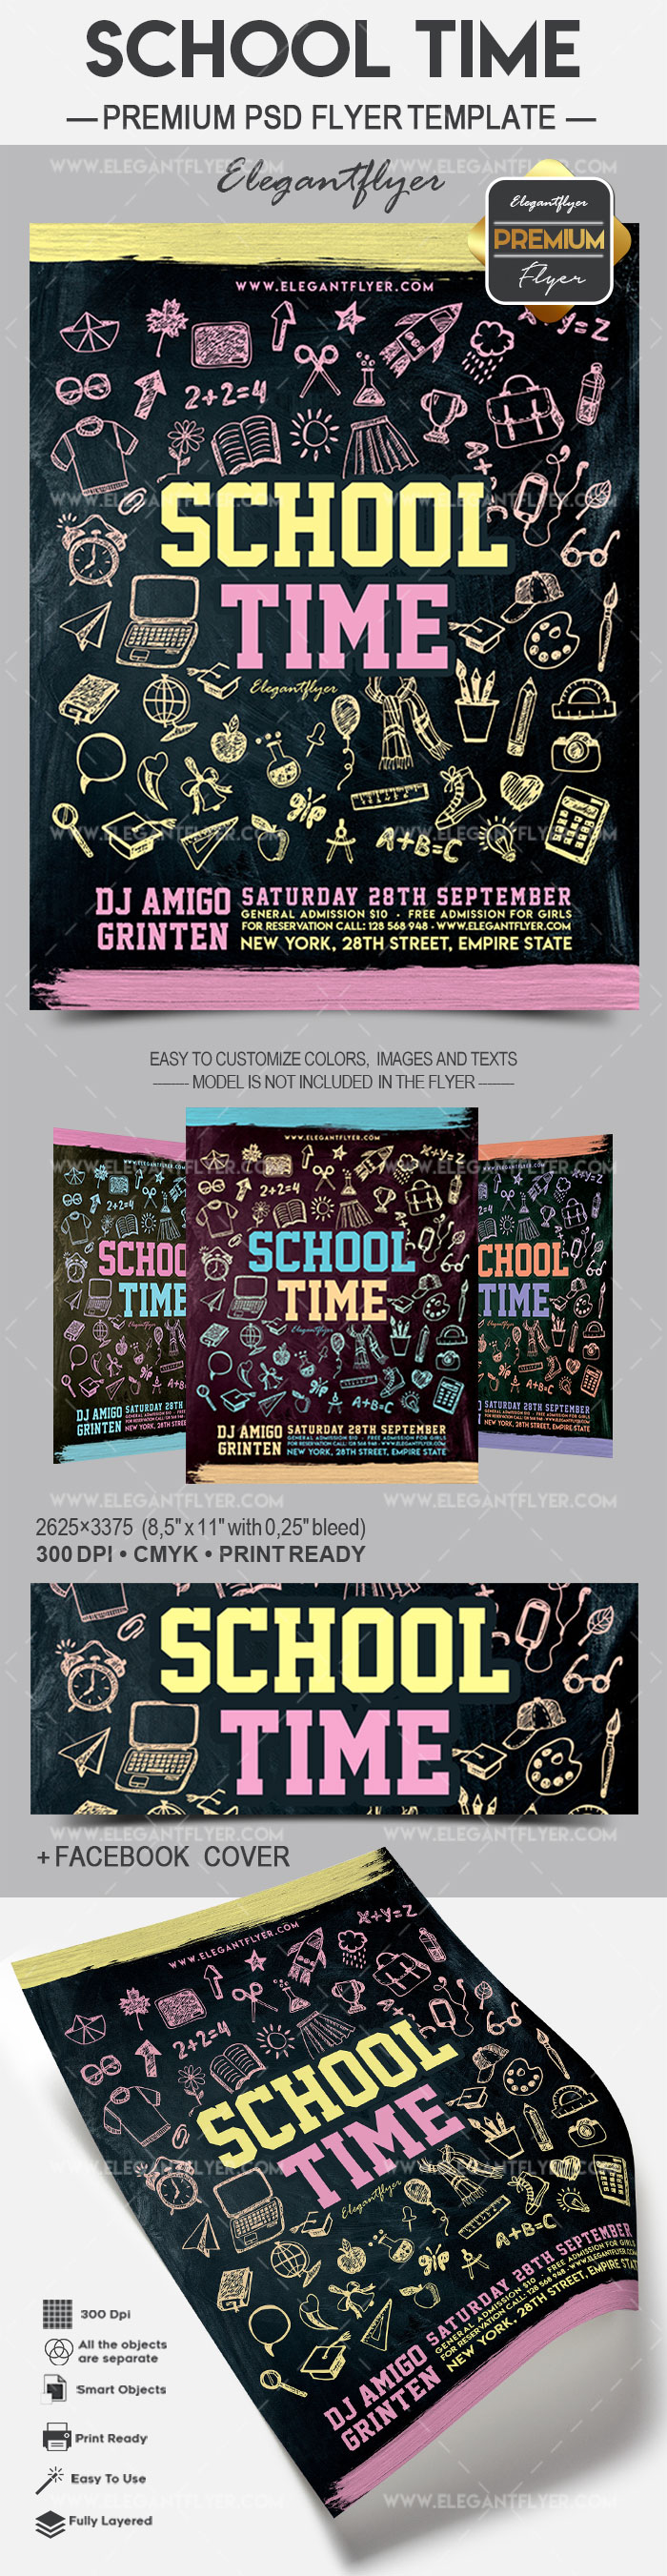 School Time – Flyer PSD Template + Facebook Cover